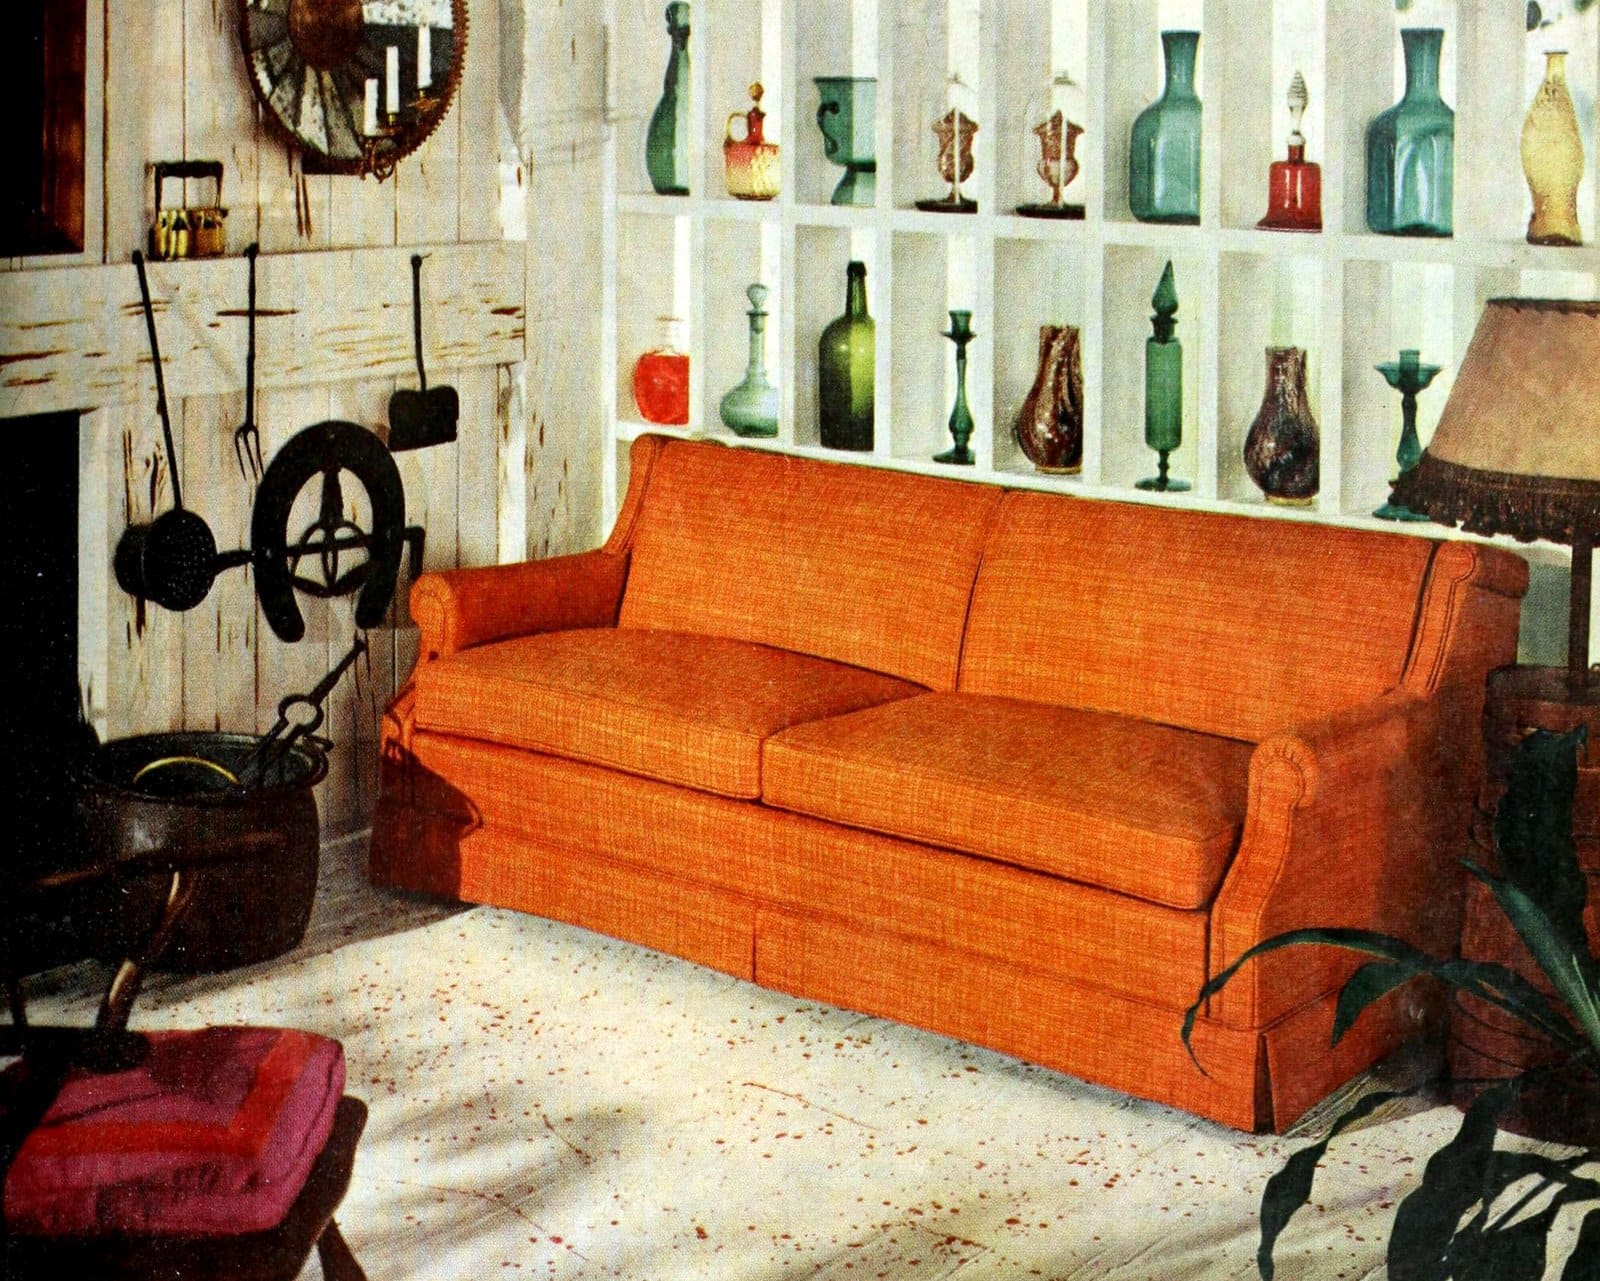 Bright orange living room sofa - Colorful vintage 1950s home decor